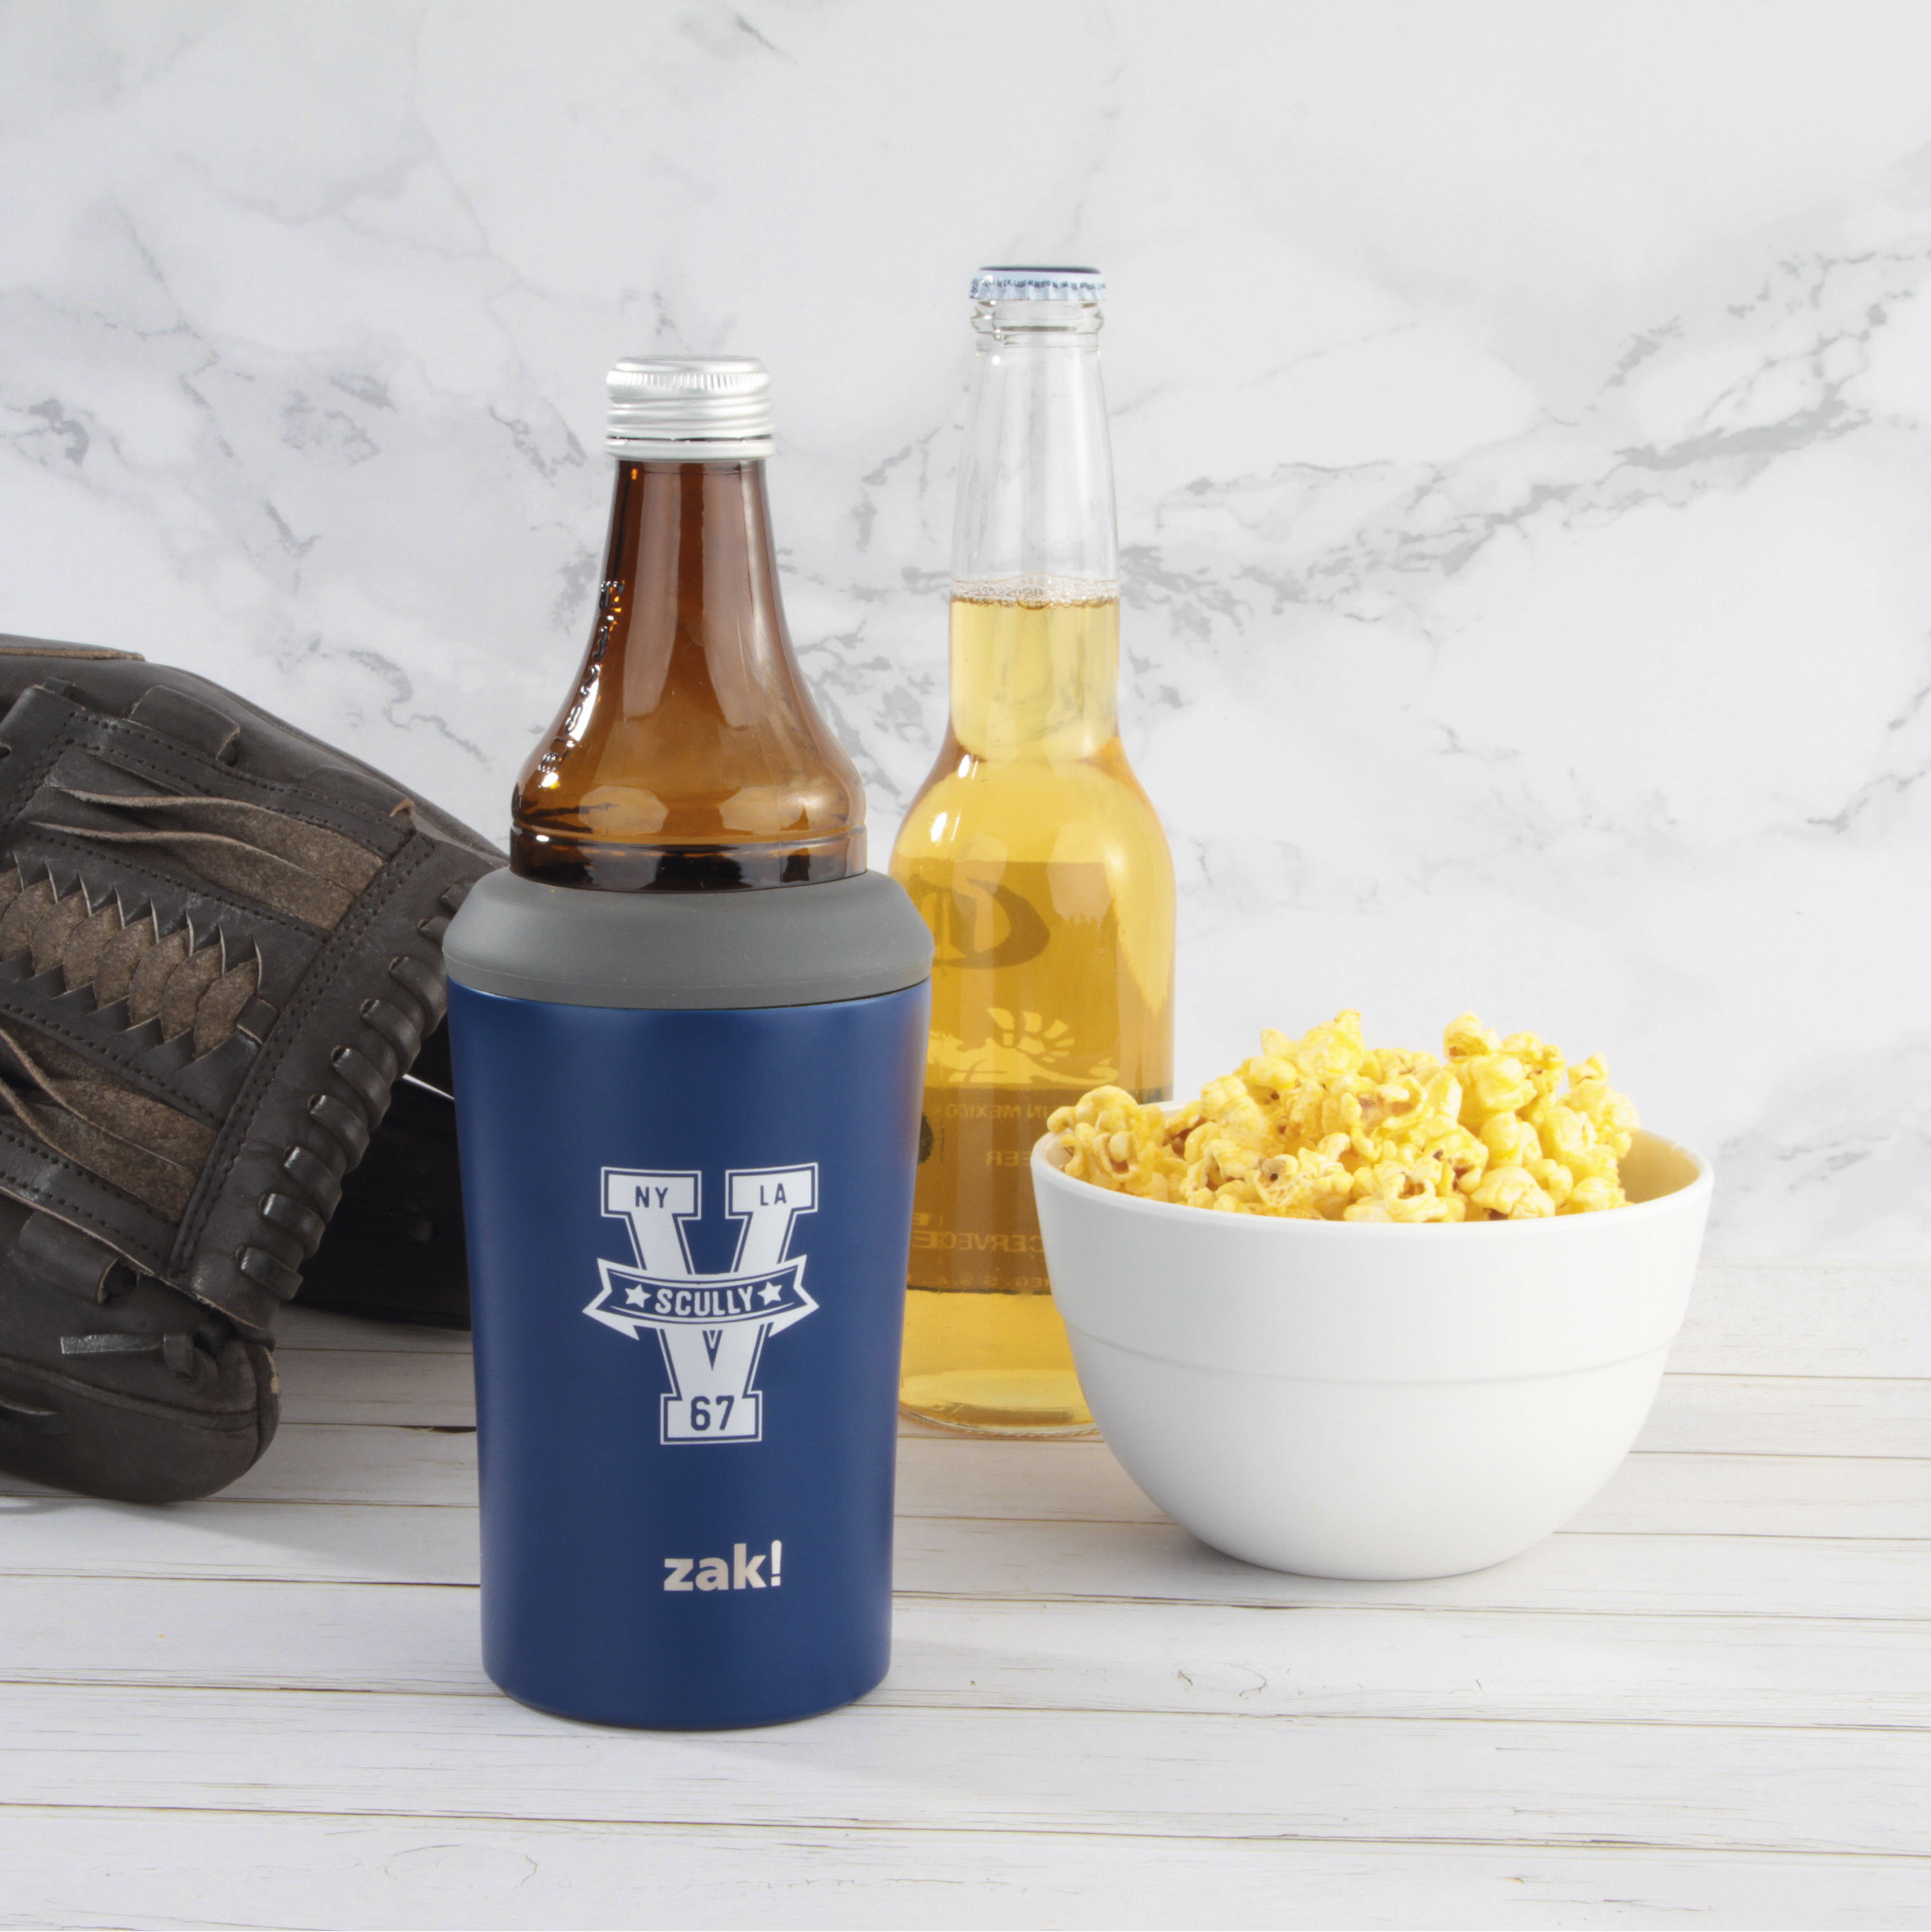 Zak Hydration 12 ounce Double Wall Stainless Steel Can and Bottle Cooler with Vacuum Insulation, Vin Scully slideshow image 5